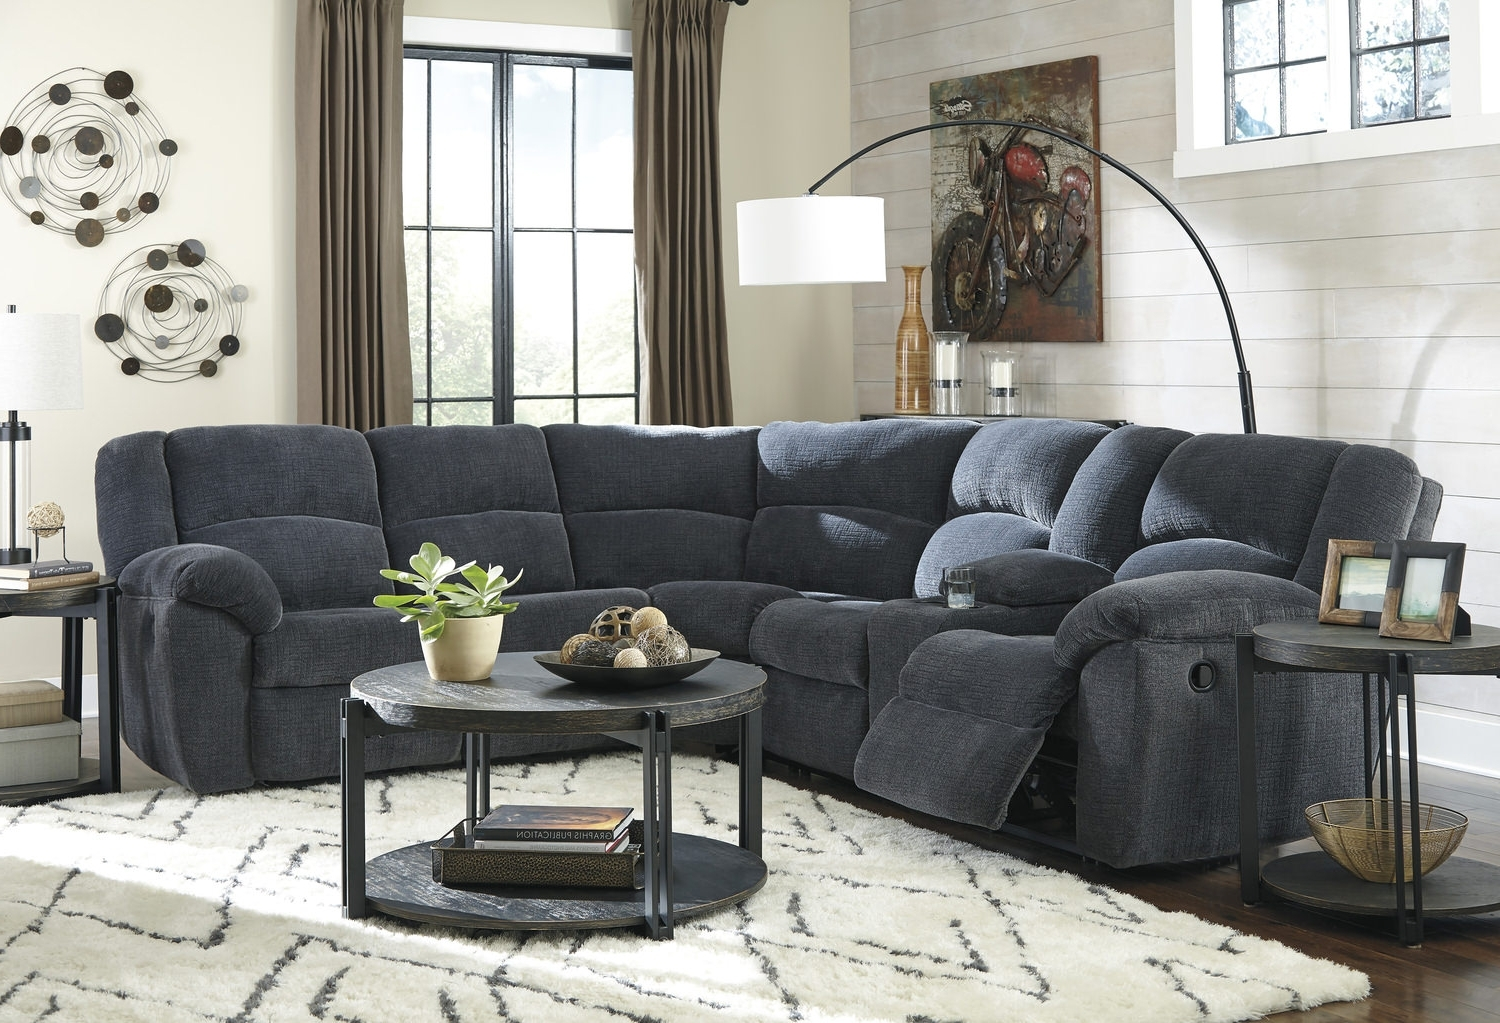 St Cloud Mn Sectional Sofas Throughout Latest Texas 2 Piece Reclining Sectional (View 17 of 20)